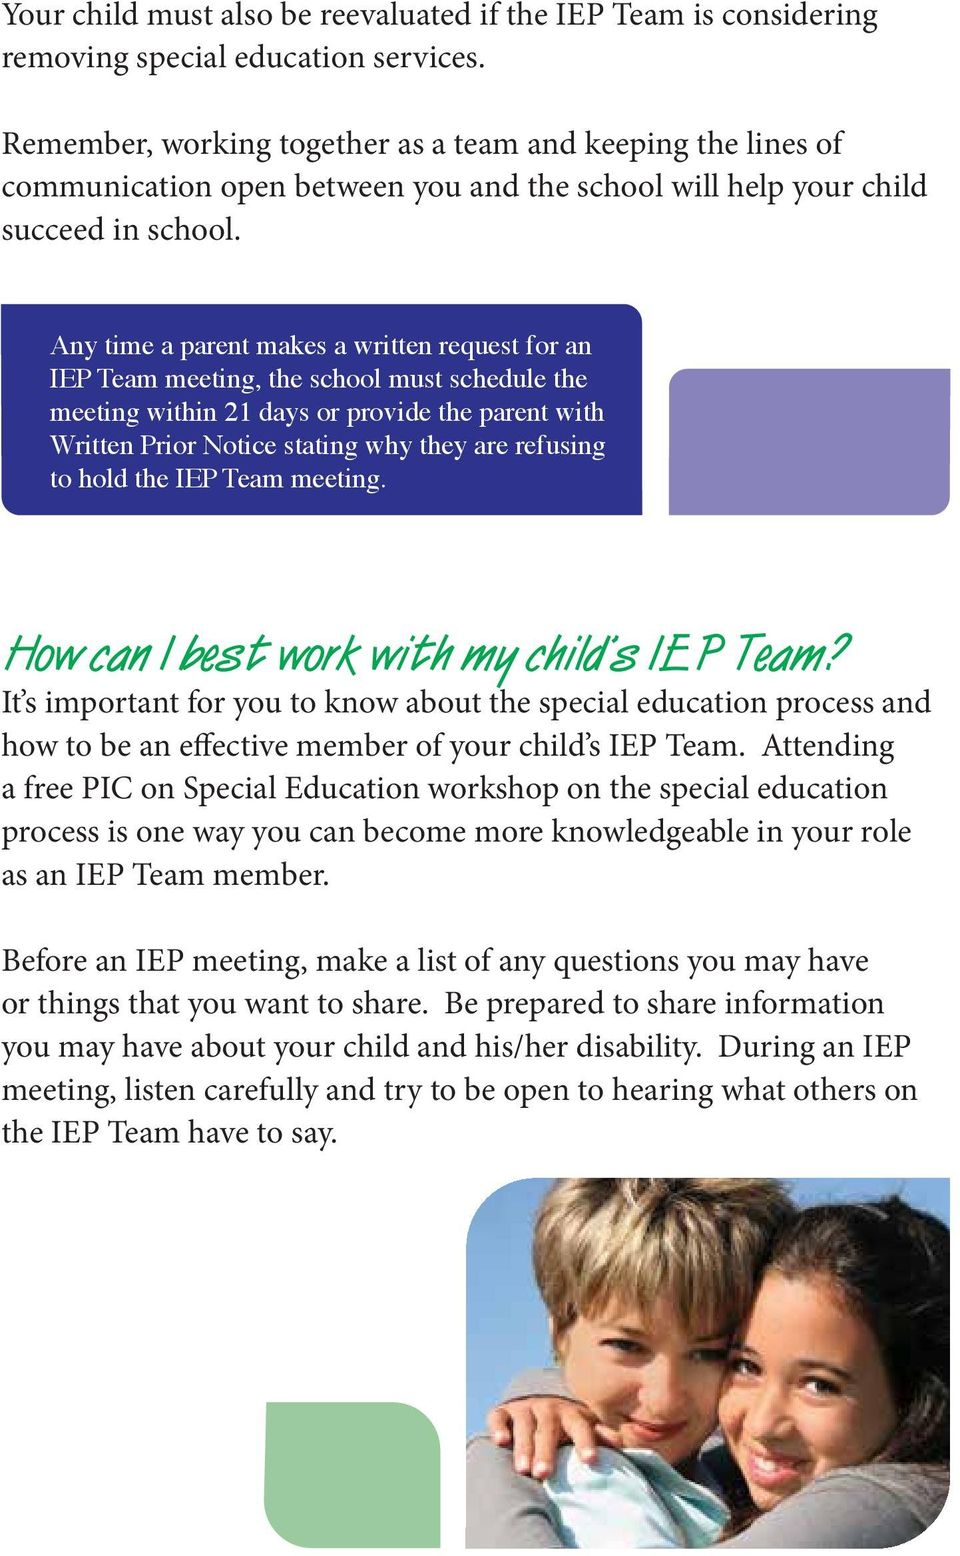 Any time a parent makes a written request for an IEP Team meeting, the school must schedule the meeting within 21 days or provide the parent with Written Prior Notice stating why they are refusing to